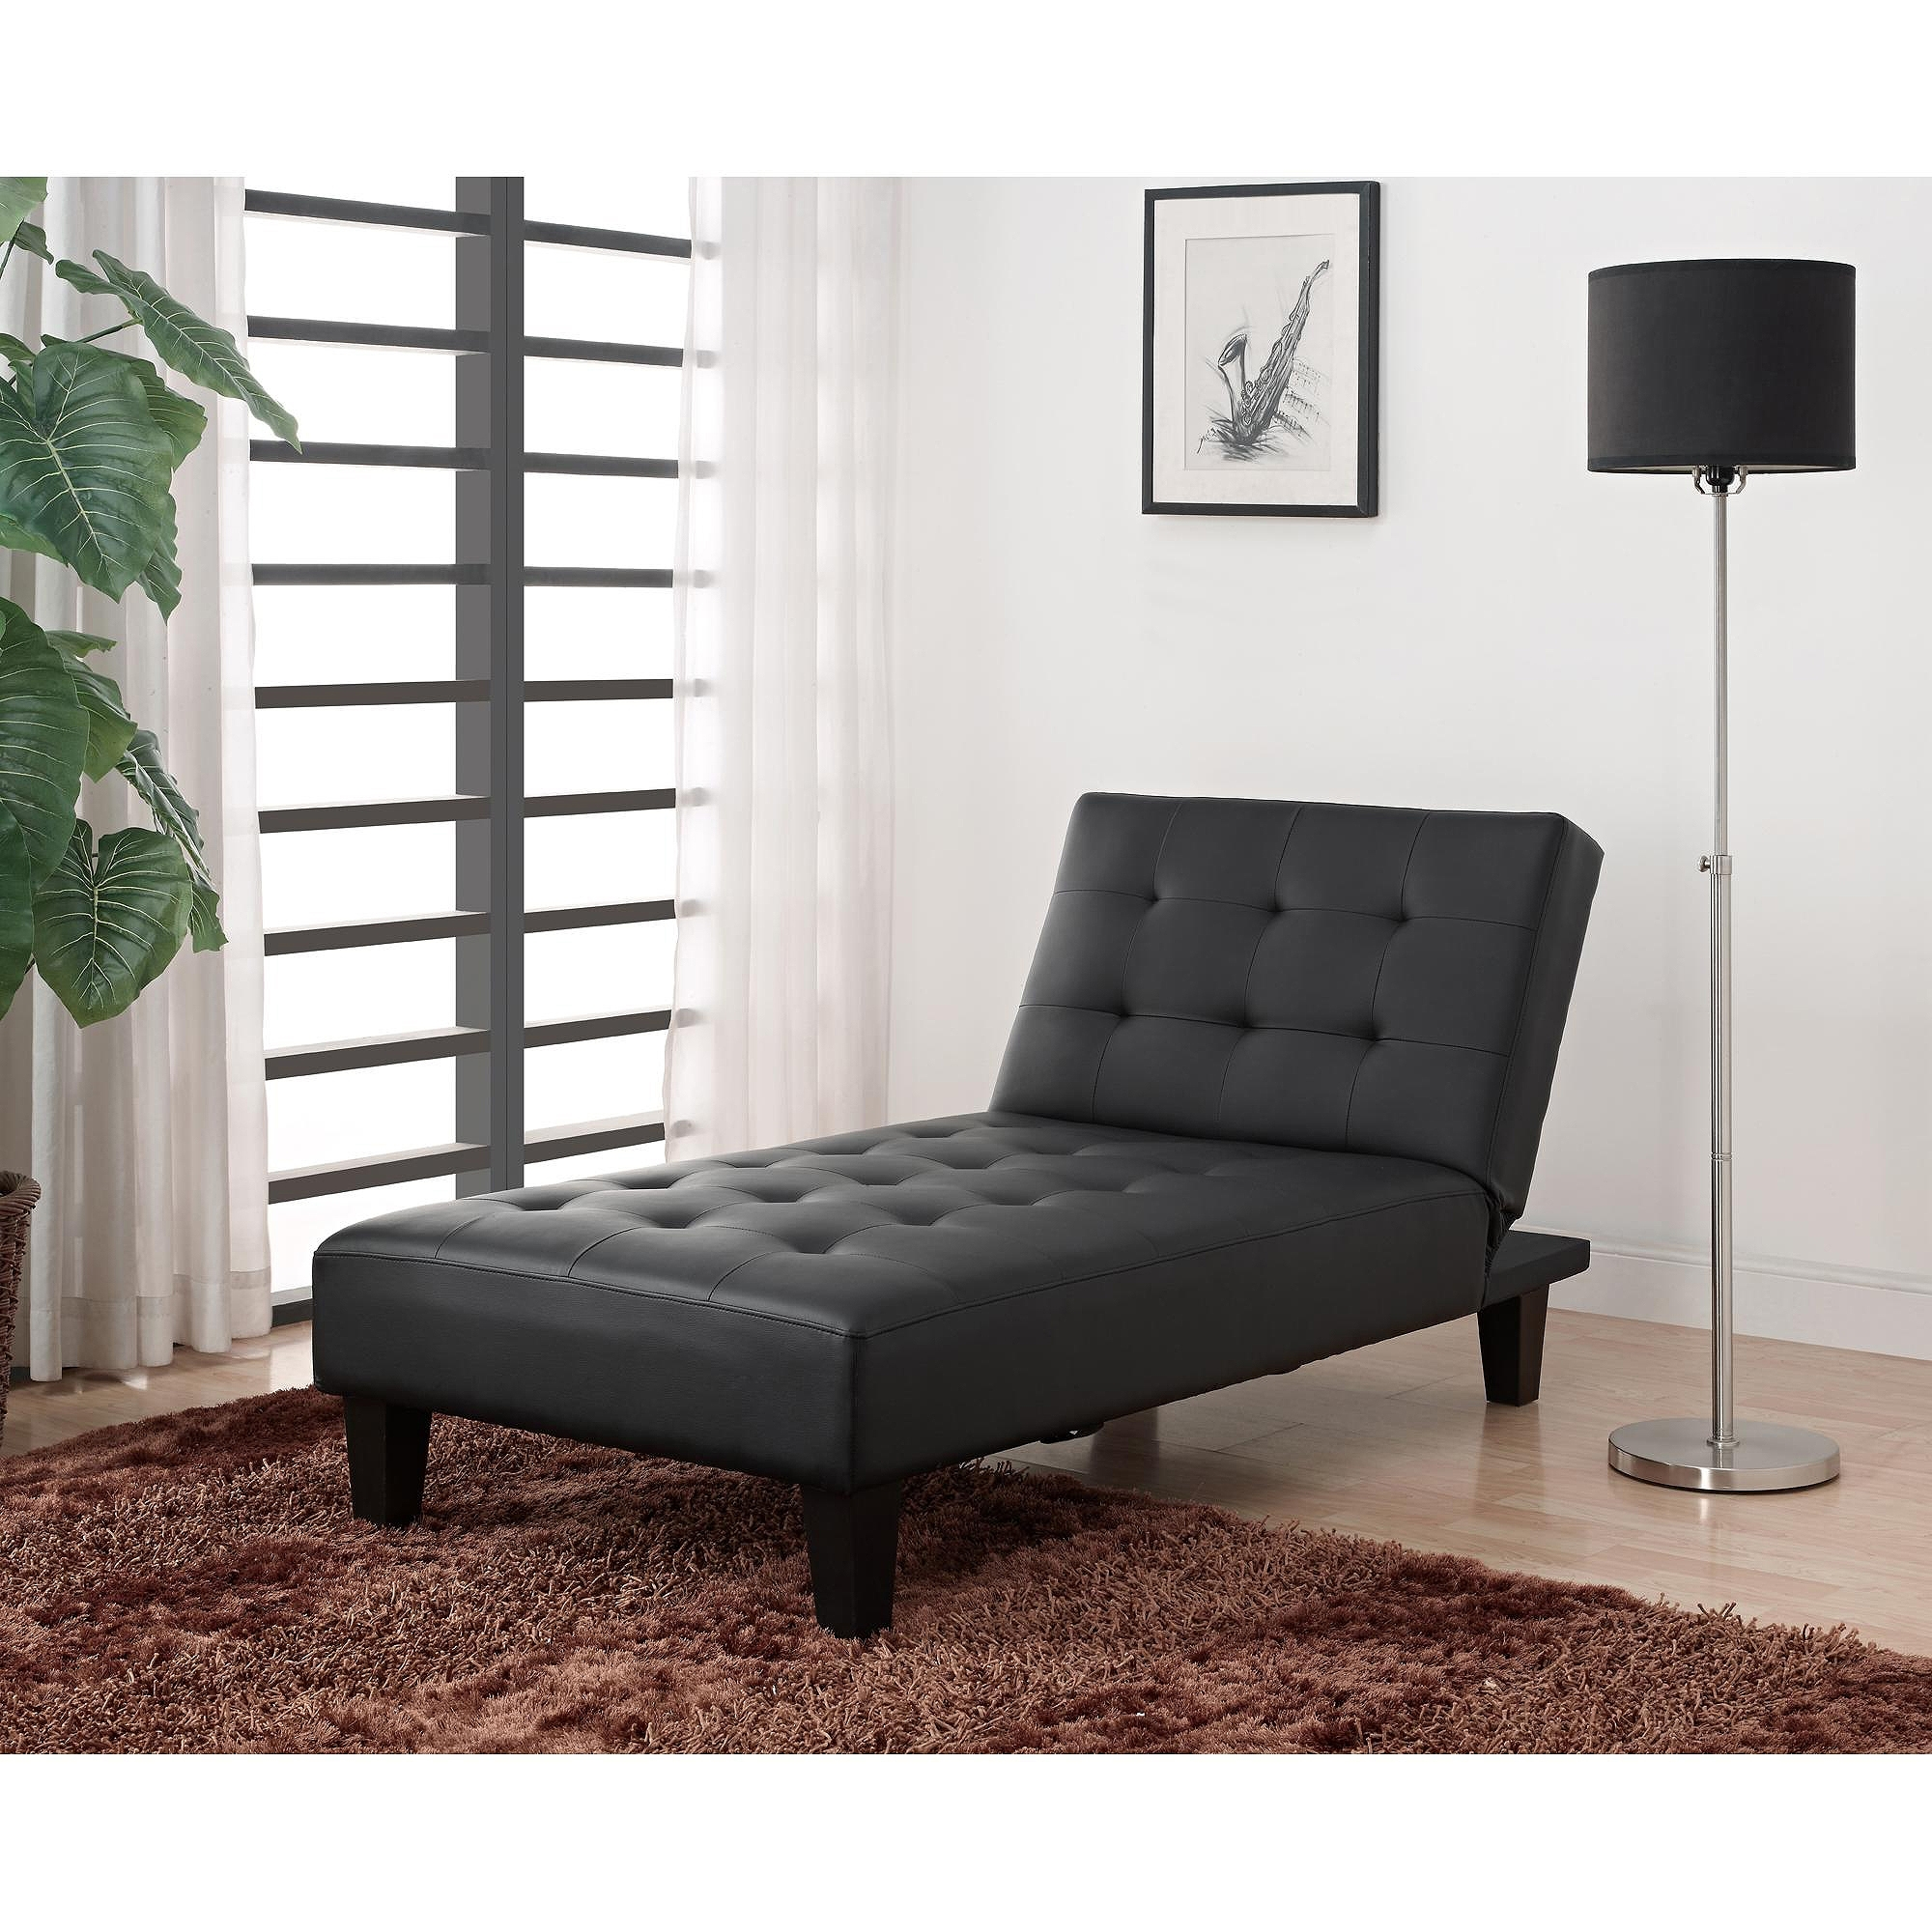 Most Current Futon Chaises Intended For Julia Futon Chaise Lounger, Black – Walmart (View 10 of 15)